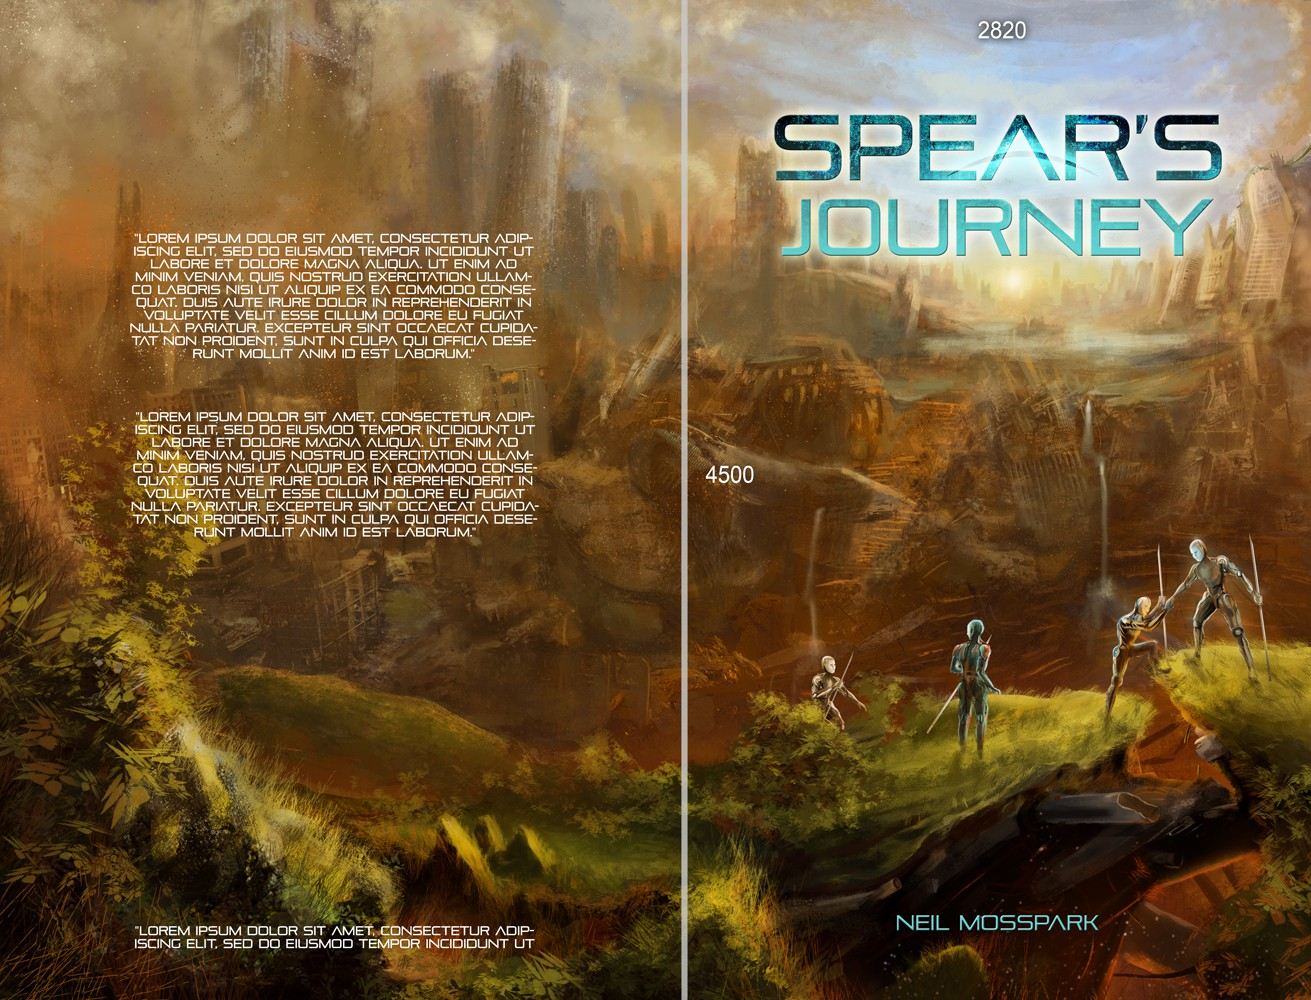 Create a Scifi/Fantasy scene for an post apocalyptic Artificial Intelligence book cover